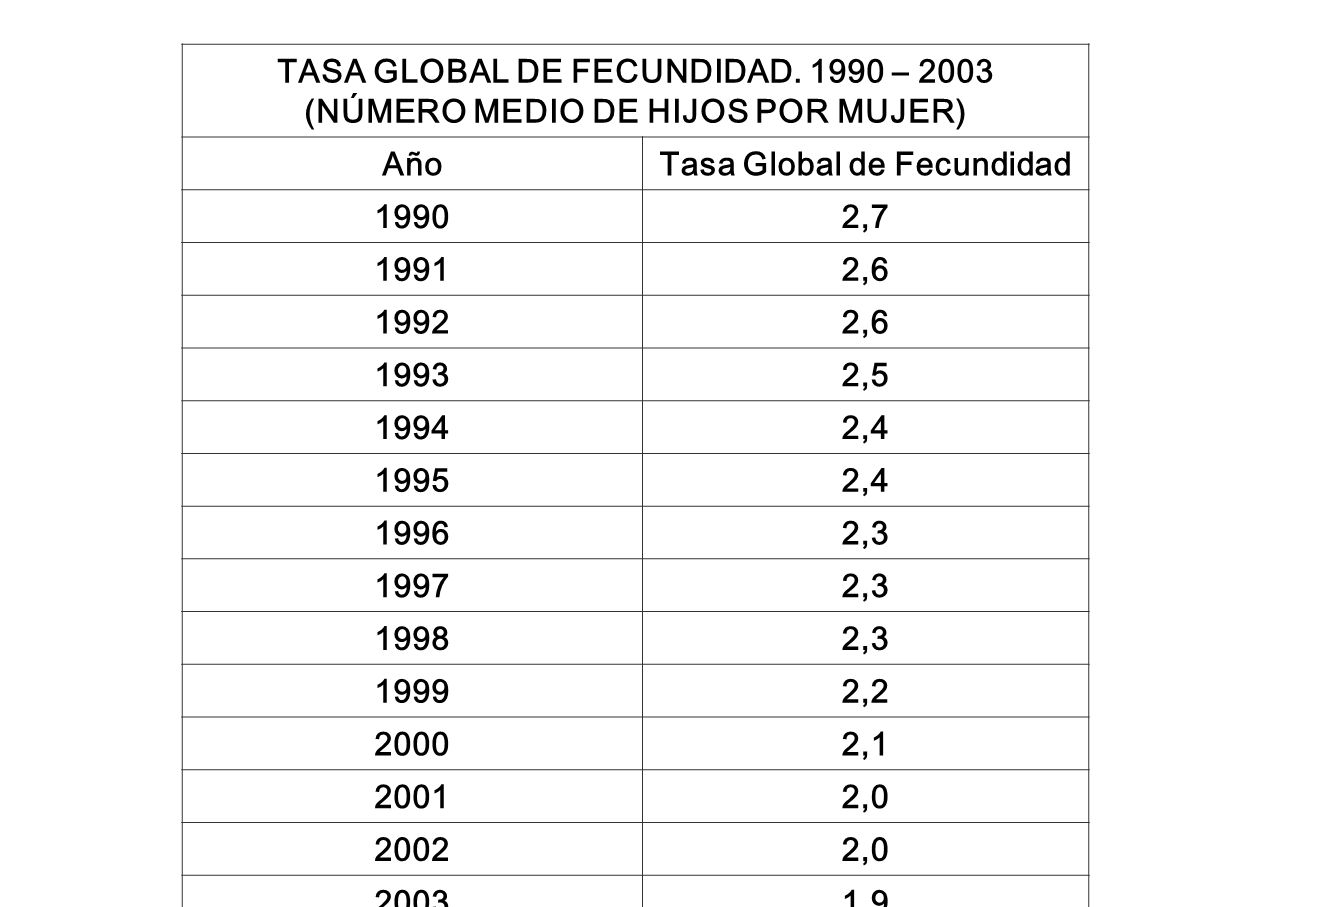 TASA GLOBAL DE FECUNDIDAD.